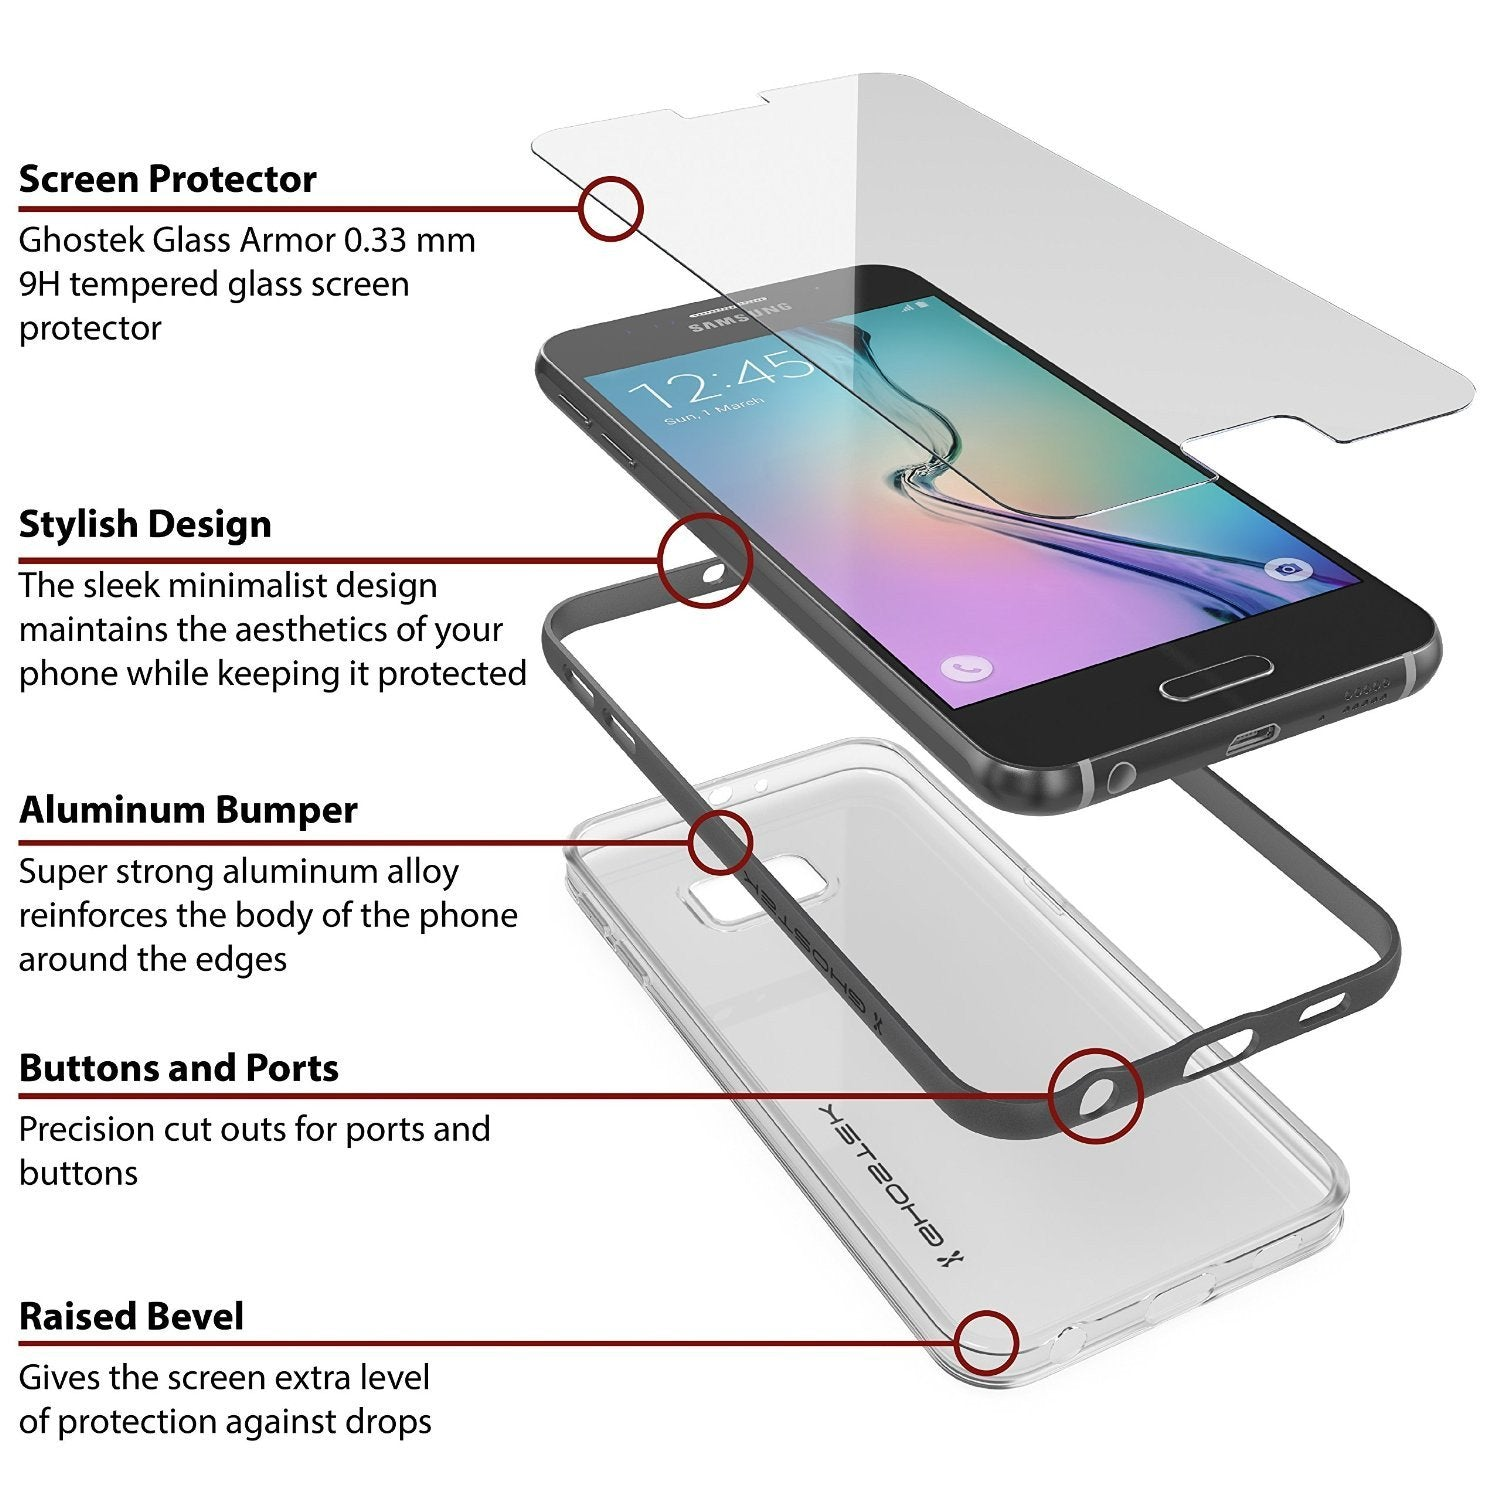 Galaxy S6 Case, Ghostek Cloak Series Black Slim Premium Protective Hybrid Impact Glass Armor